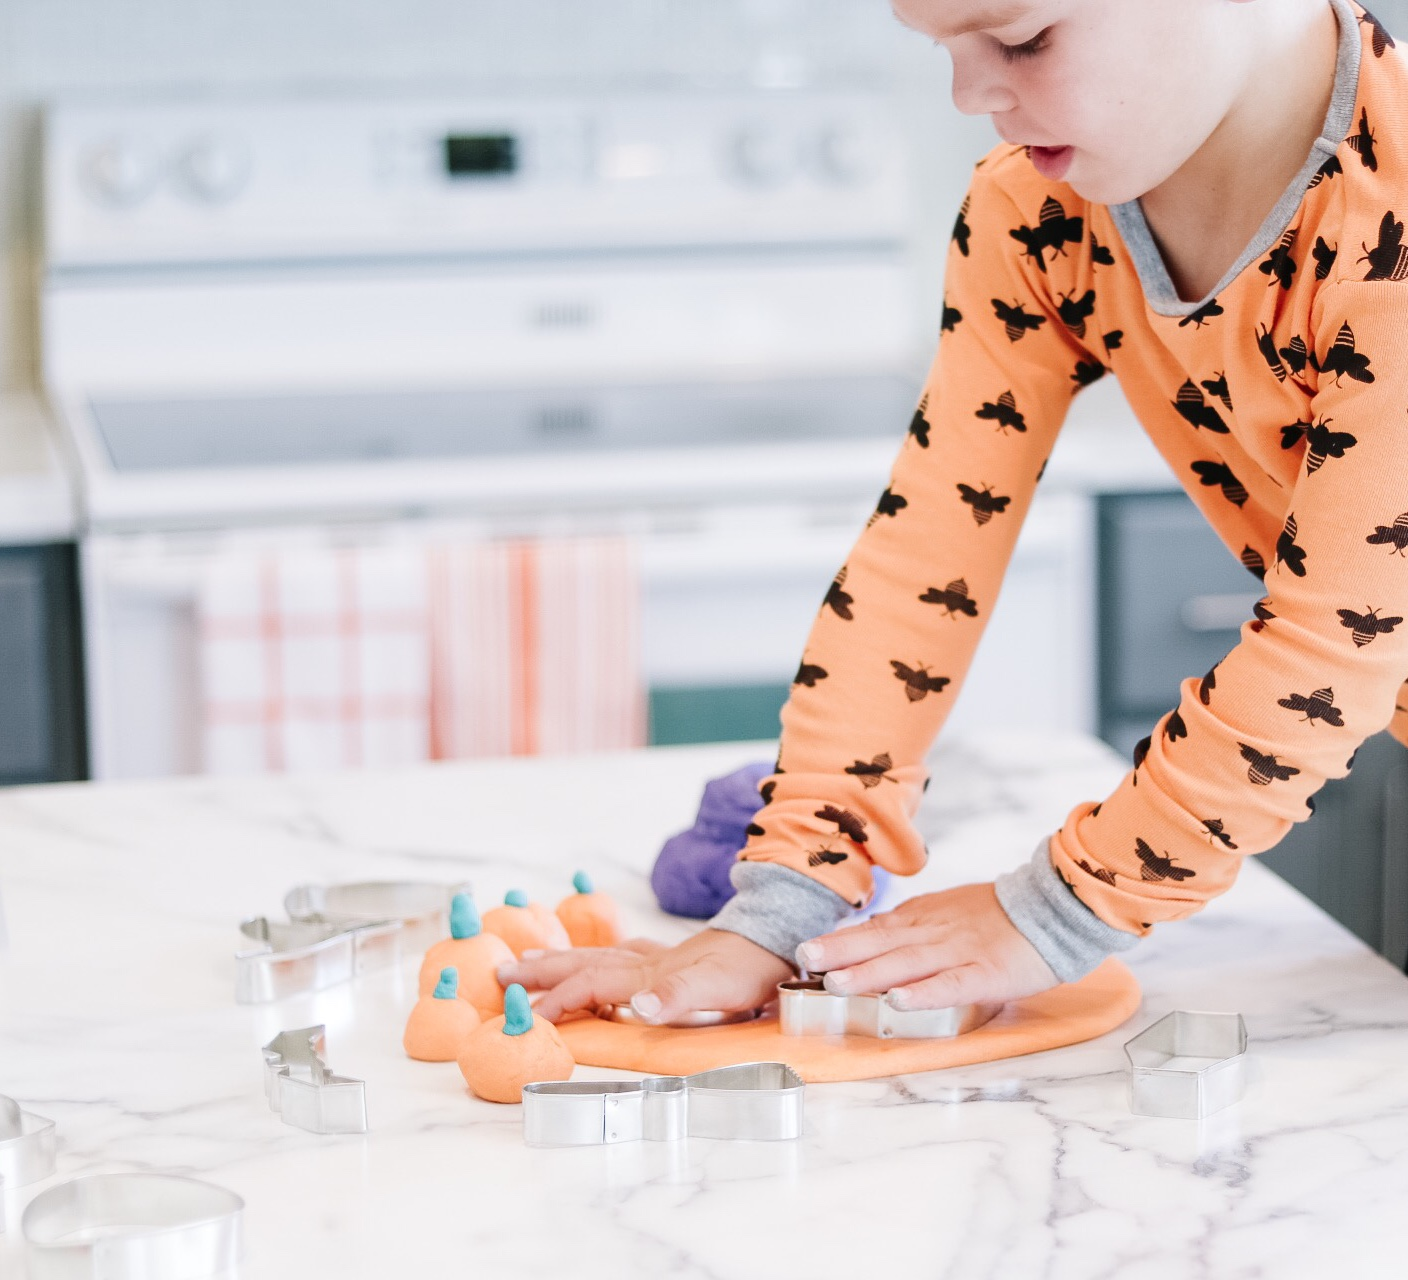 Easy play dough recipe + How to make it even funner for the holidays